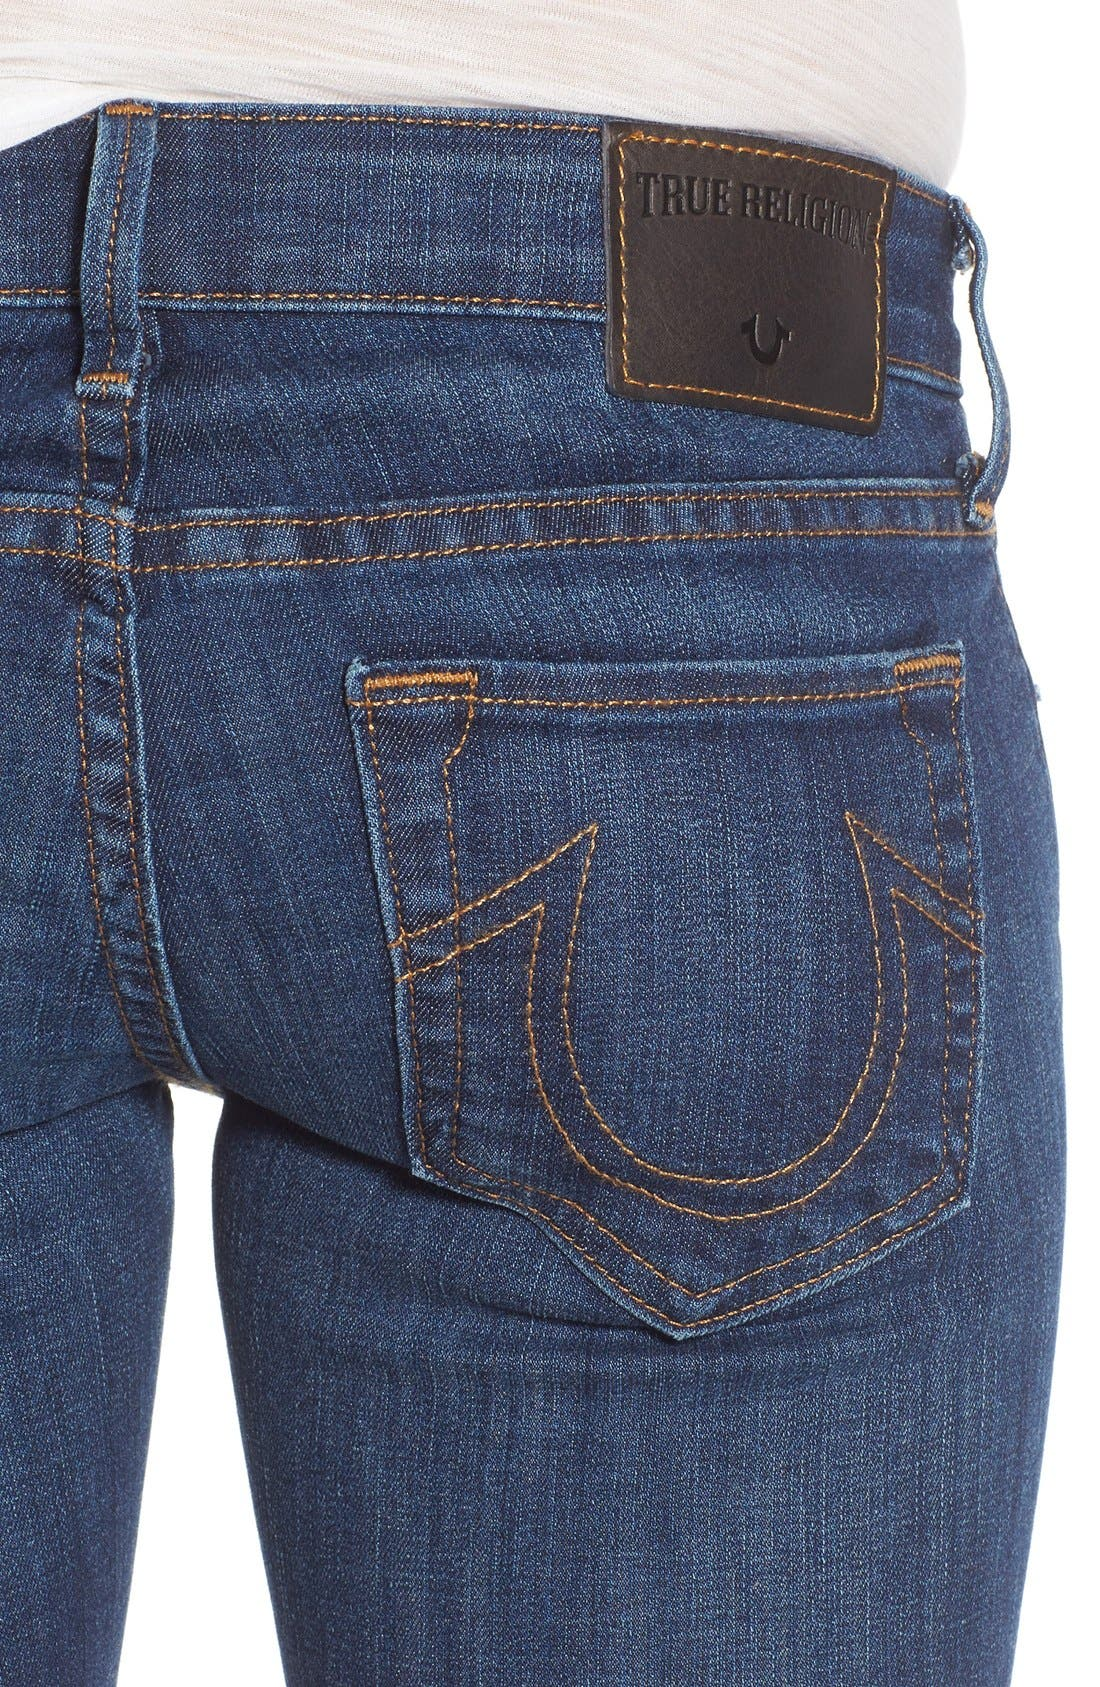 Alternate Image 4  - True Religion Brand Jeans 'Karlie' Bell Bottom Jeans (Worn Vintage)